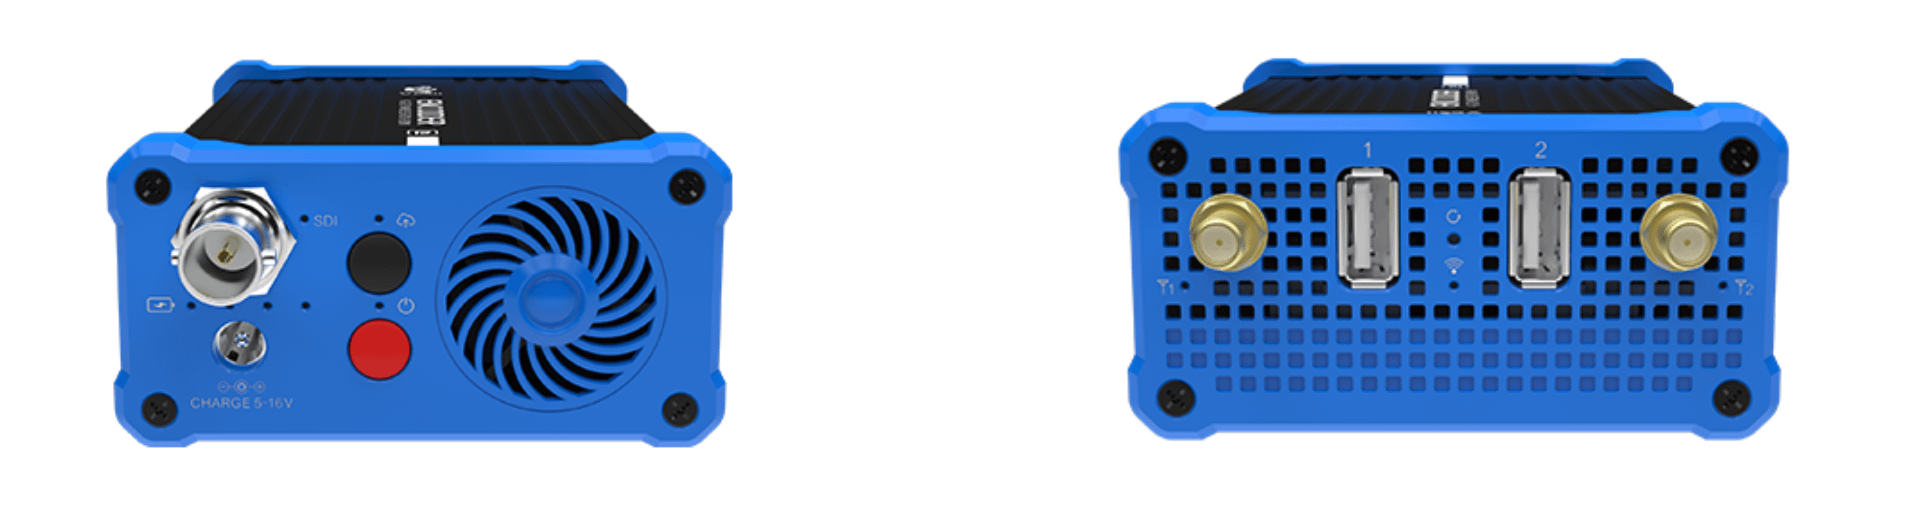 Kiloview P1 Front and Back